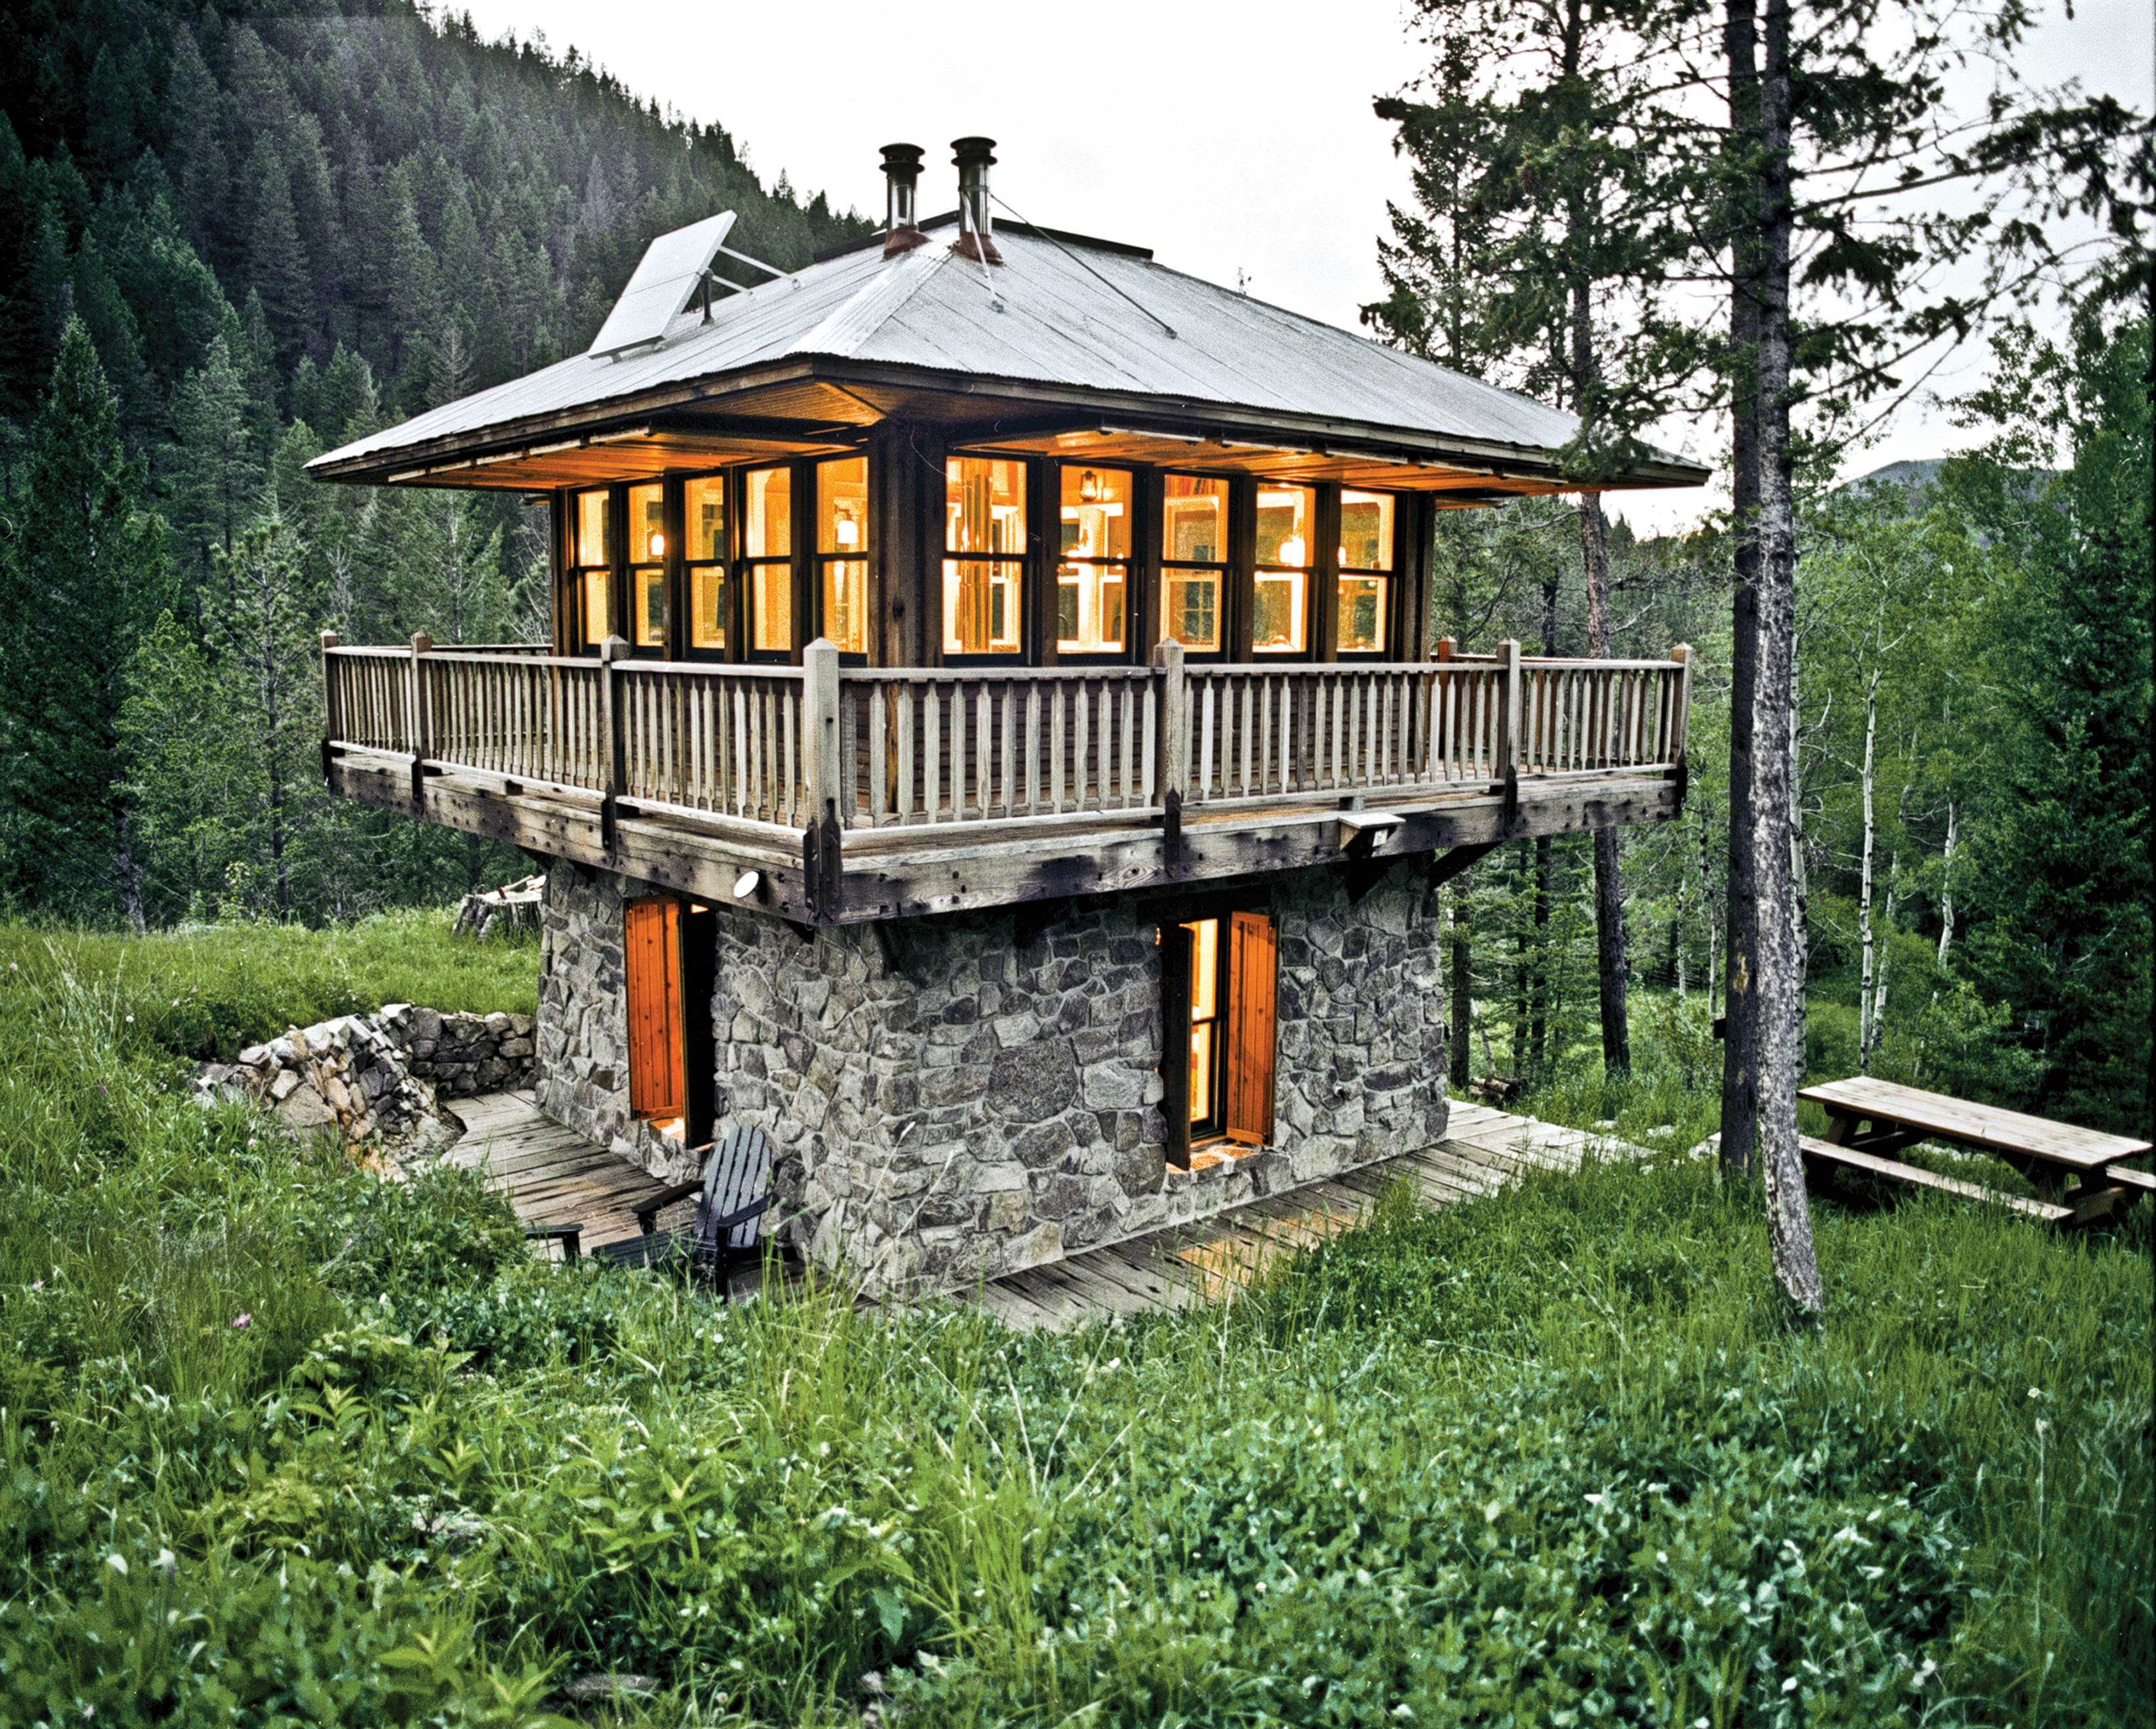 Mortgage Free Living In A Hand Built Tiny Home Green Homes